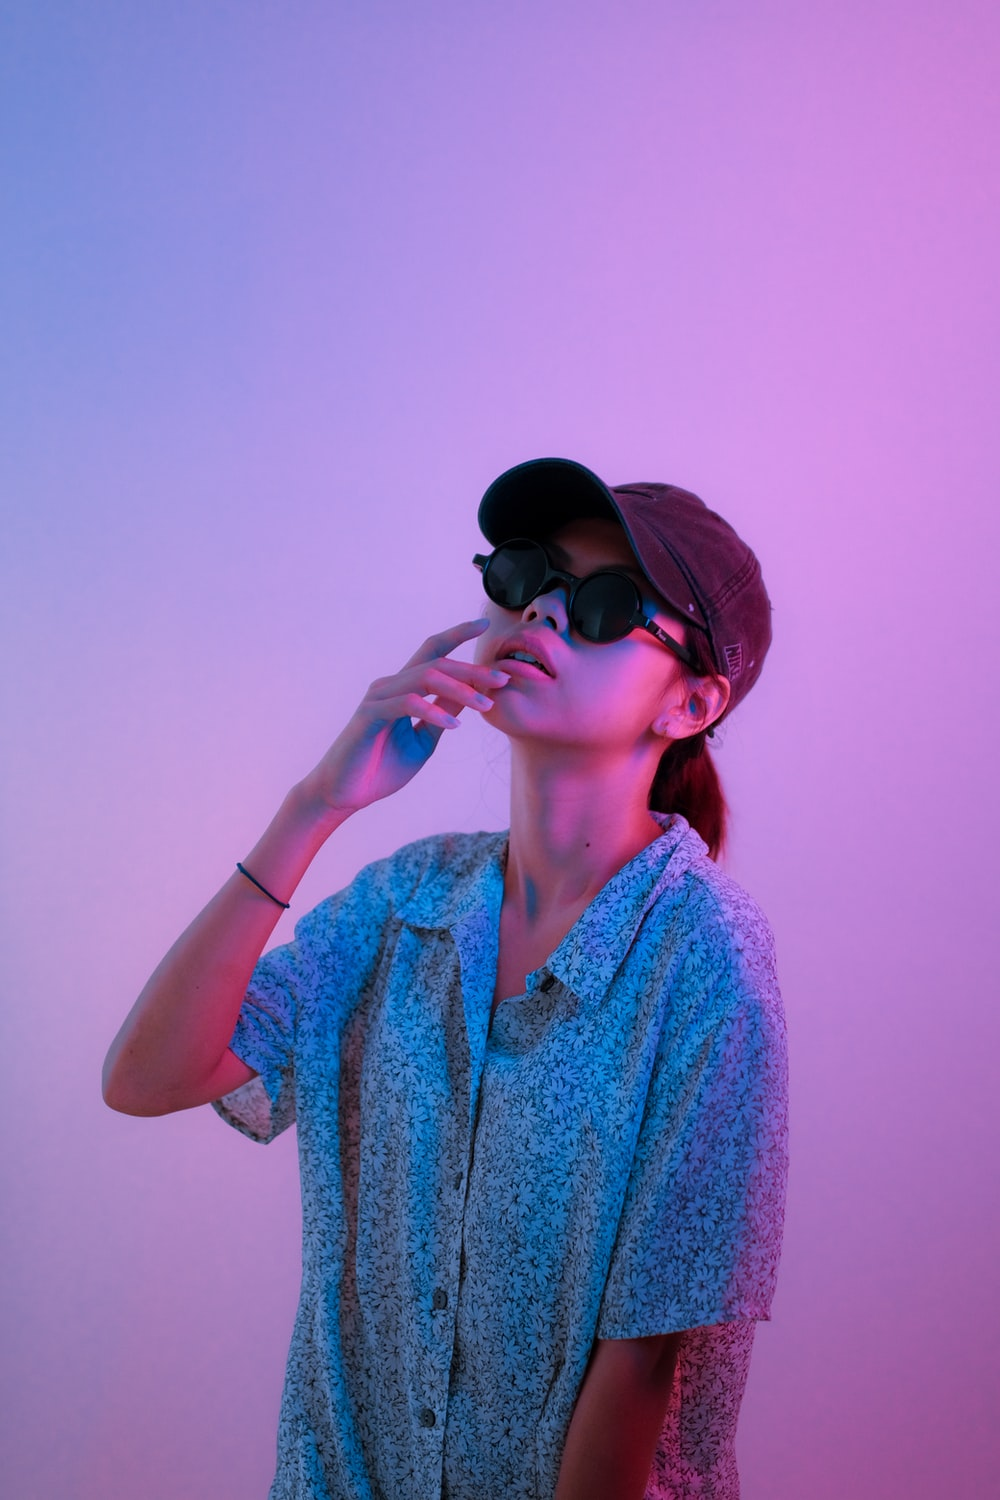 woman in blue and white floral button up shirt wearing black sunglasses